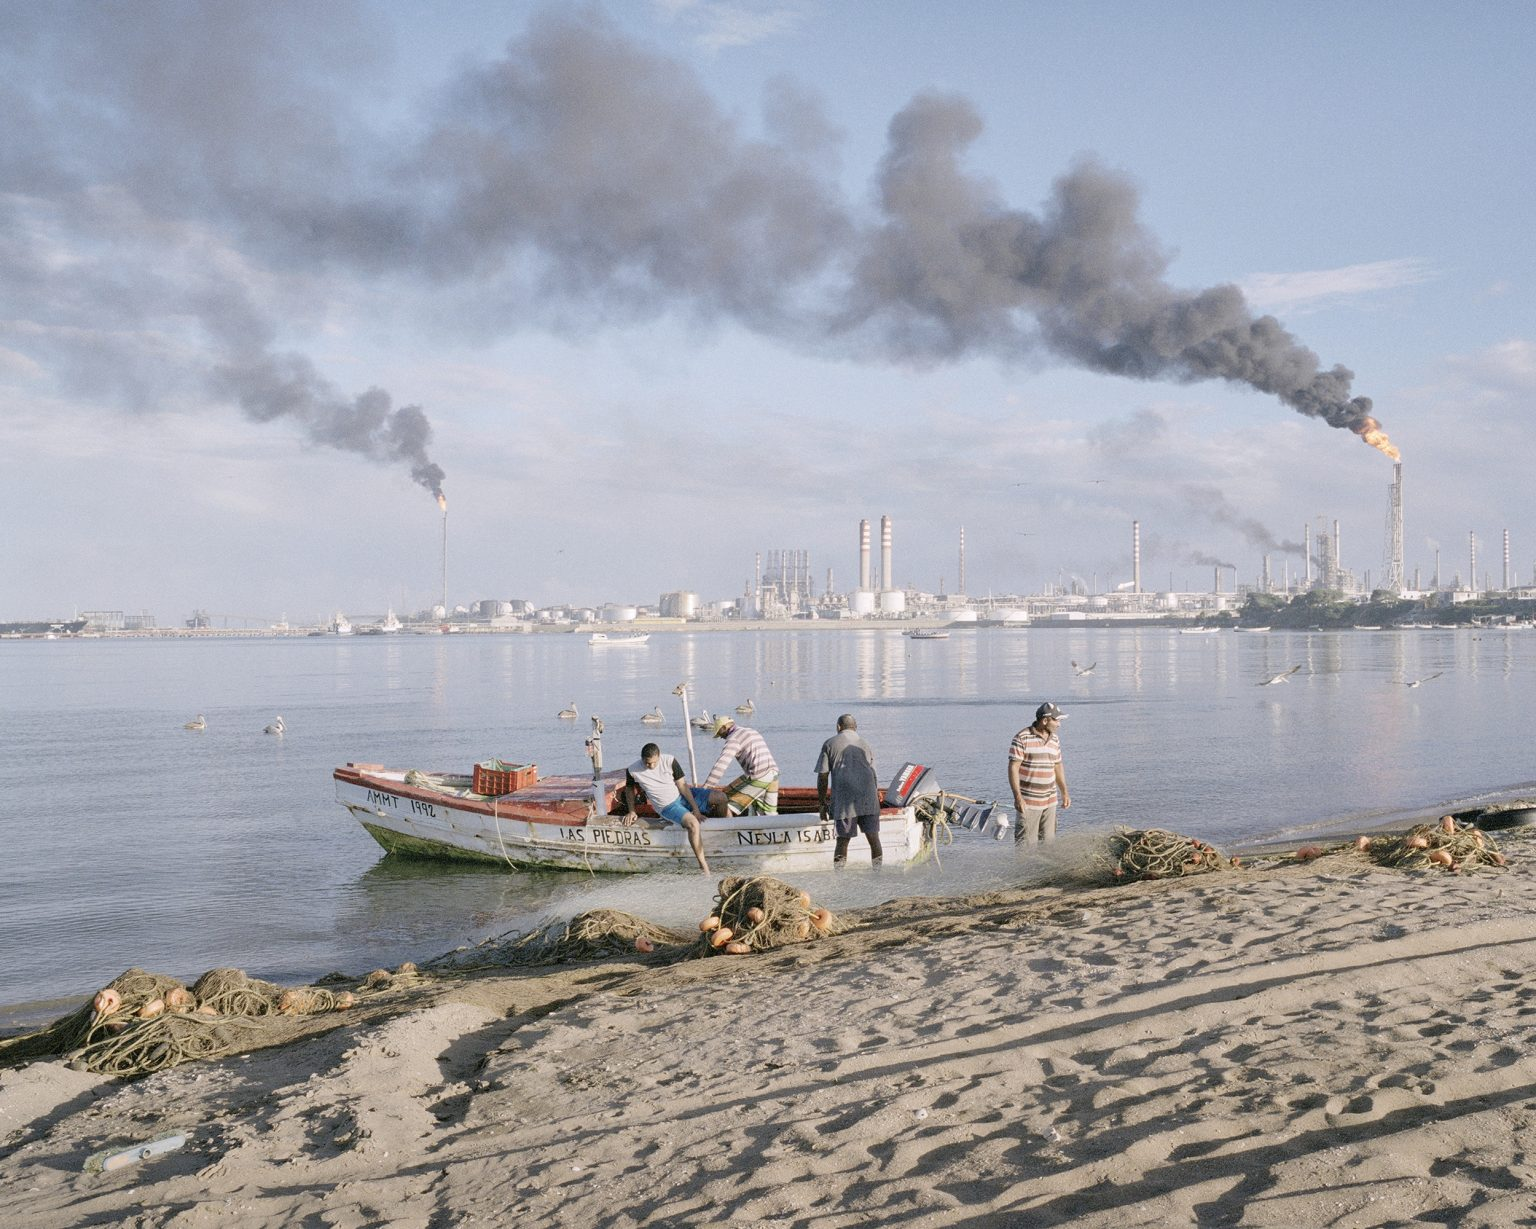 Fishermen coming back from the work session at the sun rise in Punta Cardon. In the background the biggest oil refinery of Venezuela.